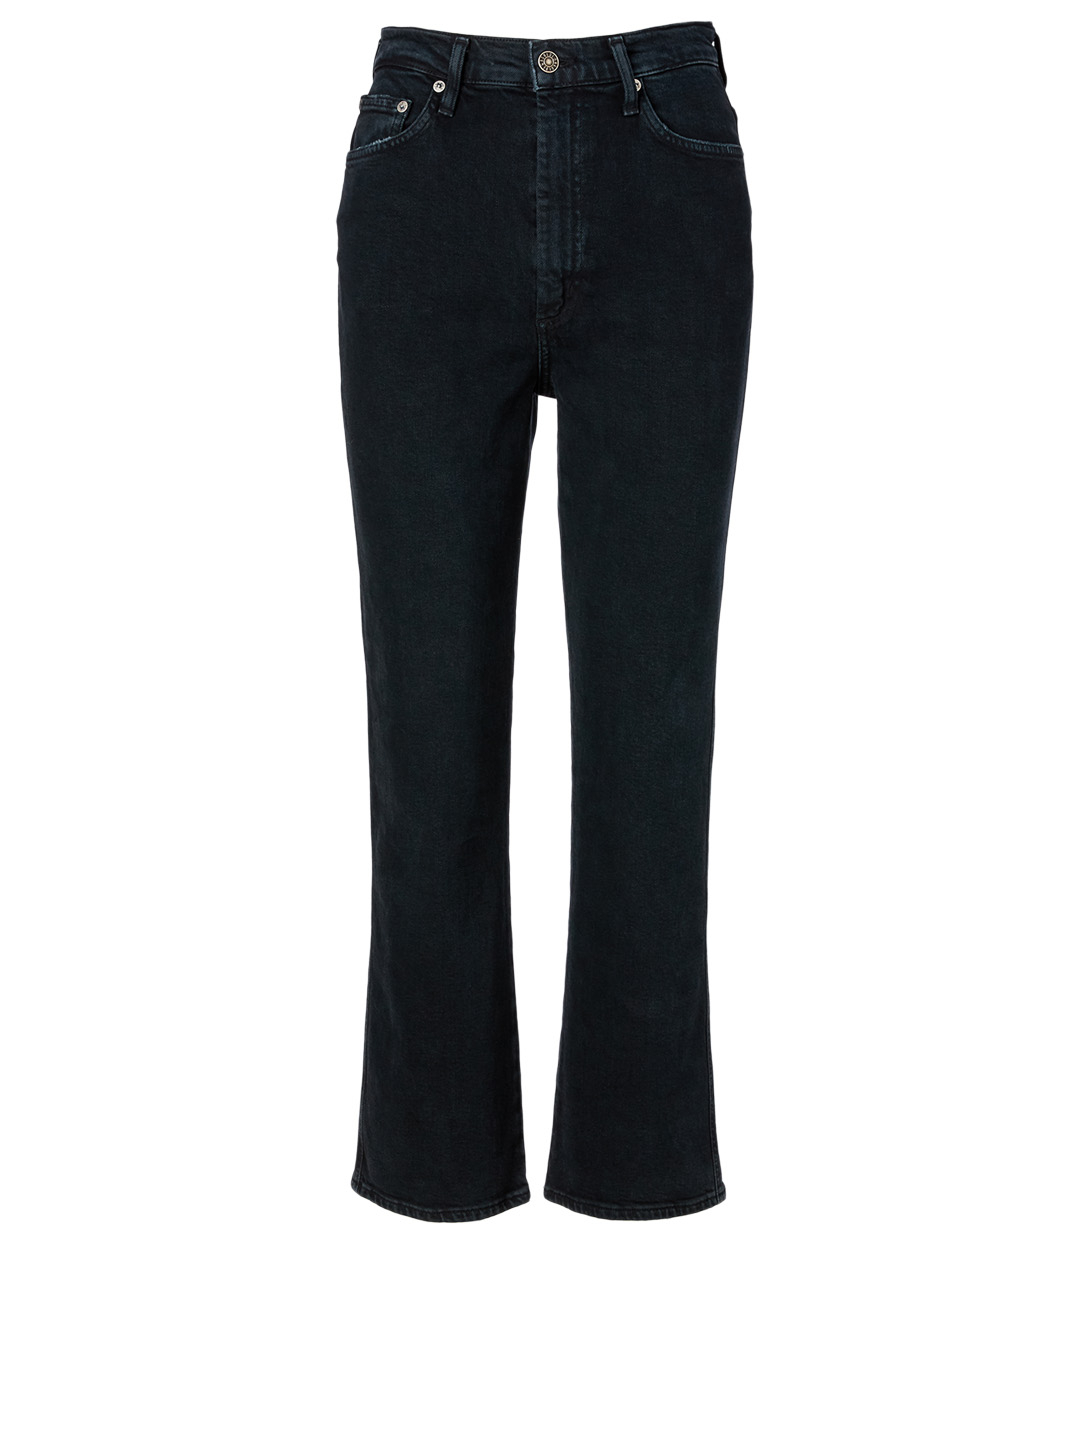 AGOLDE Pinch Waist High-Waisted Jeans Women's Black